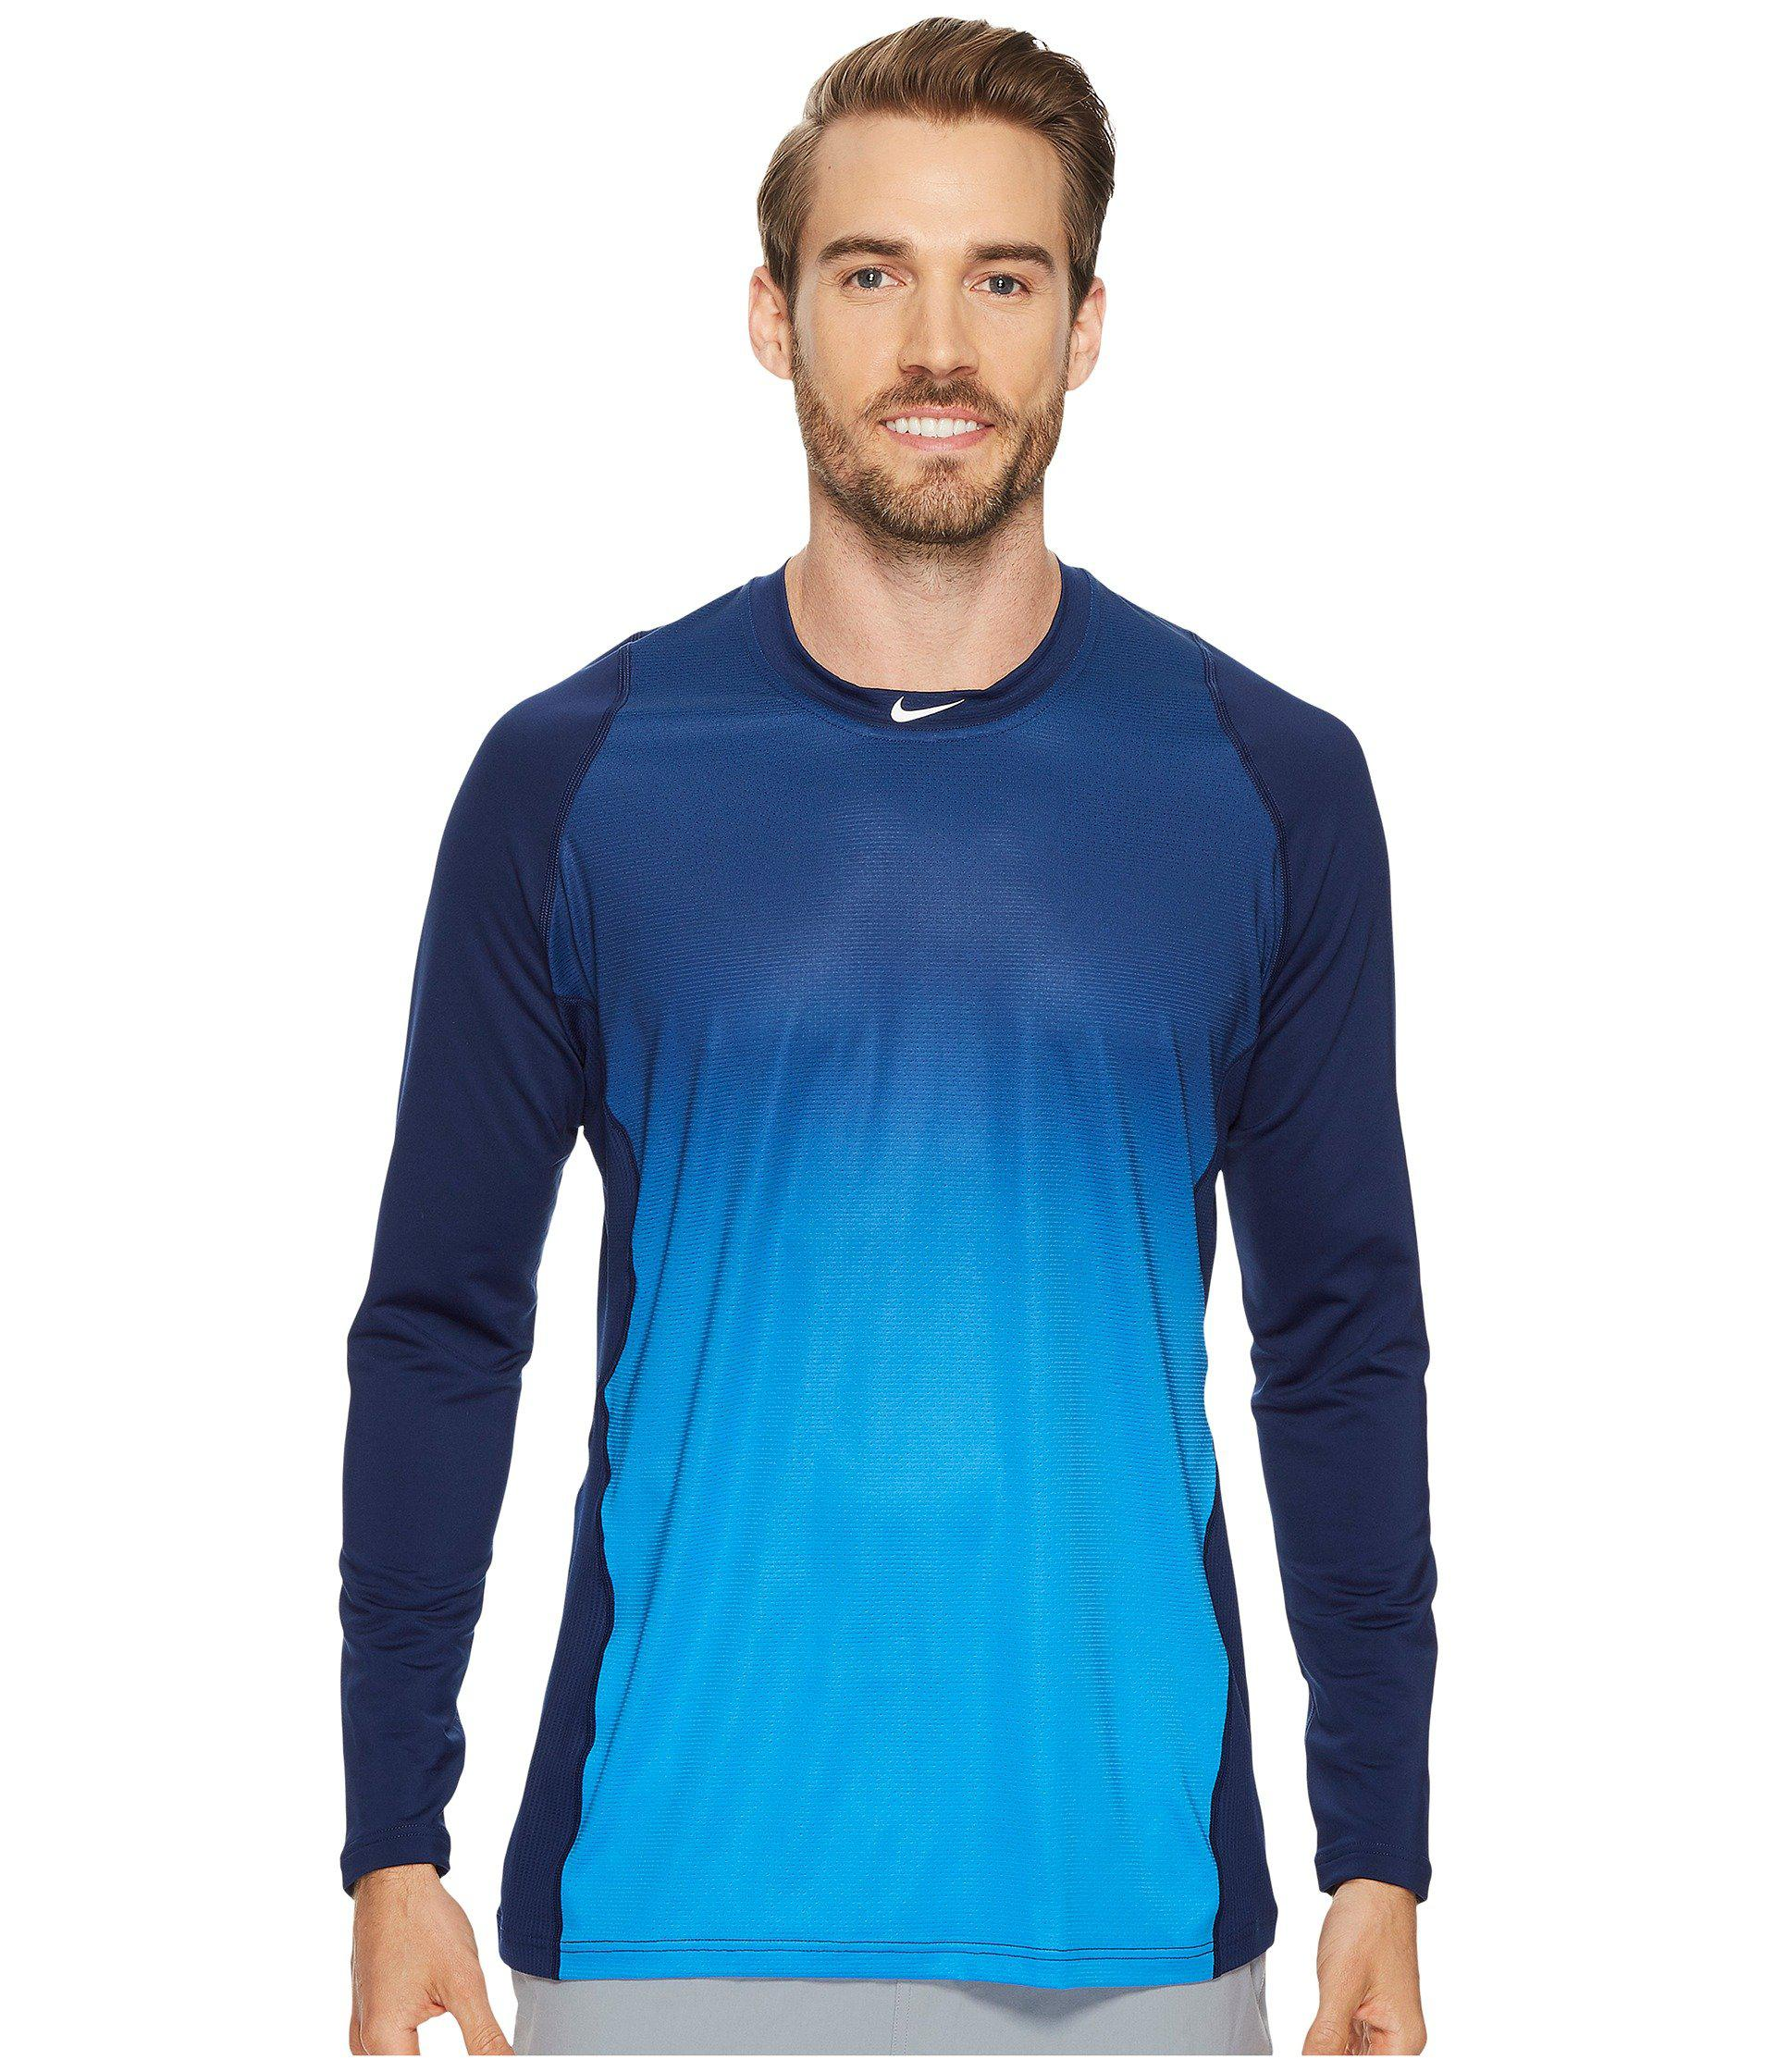 c50f48371c525 Lyst - Nike Pro Hypercool Players Training Top in Blue for Men ...